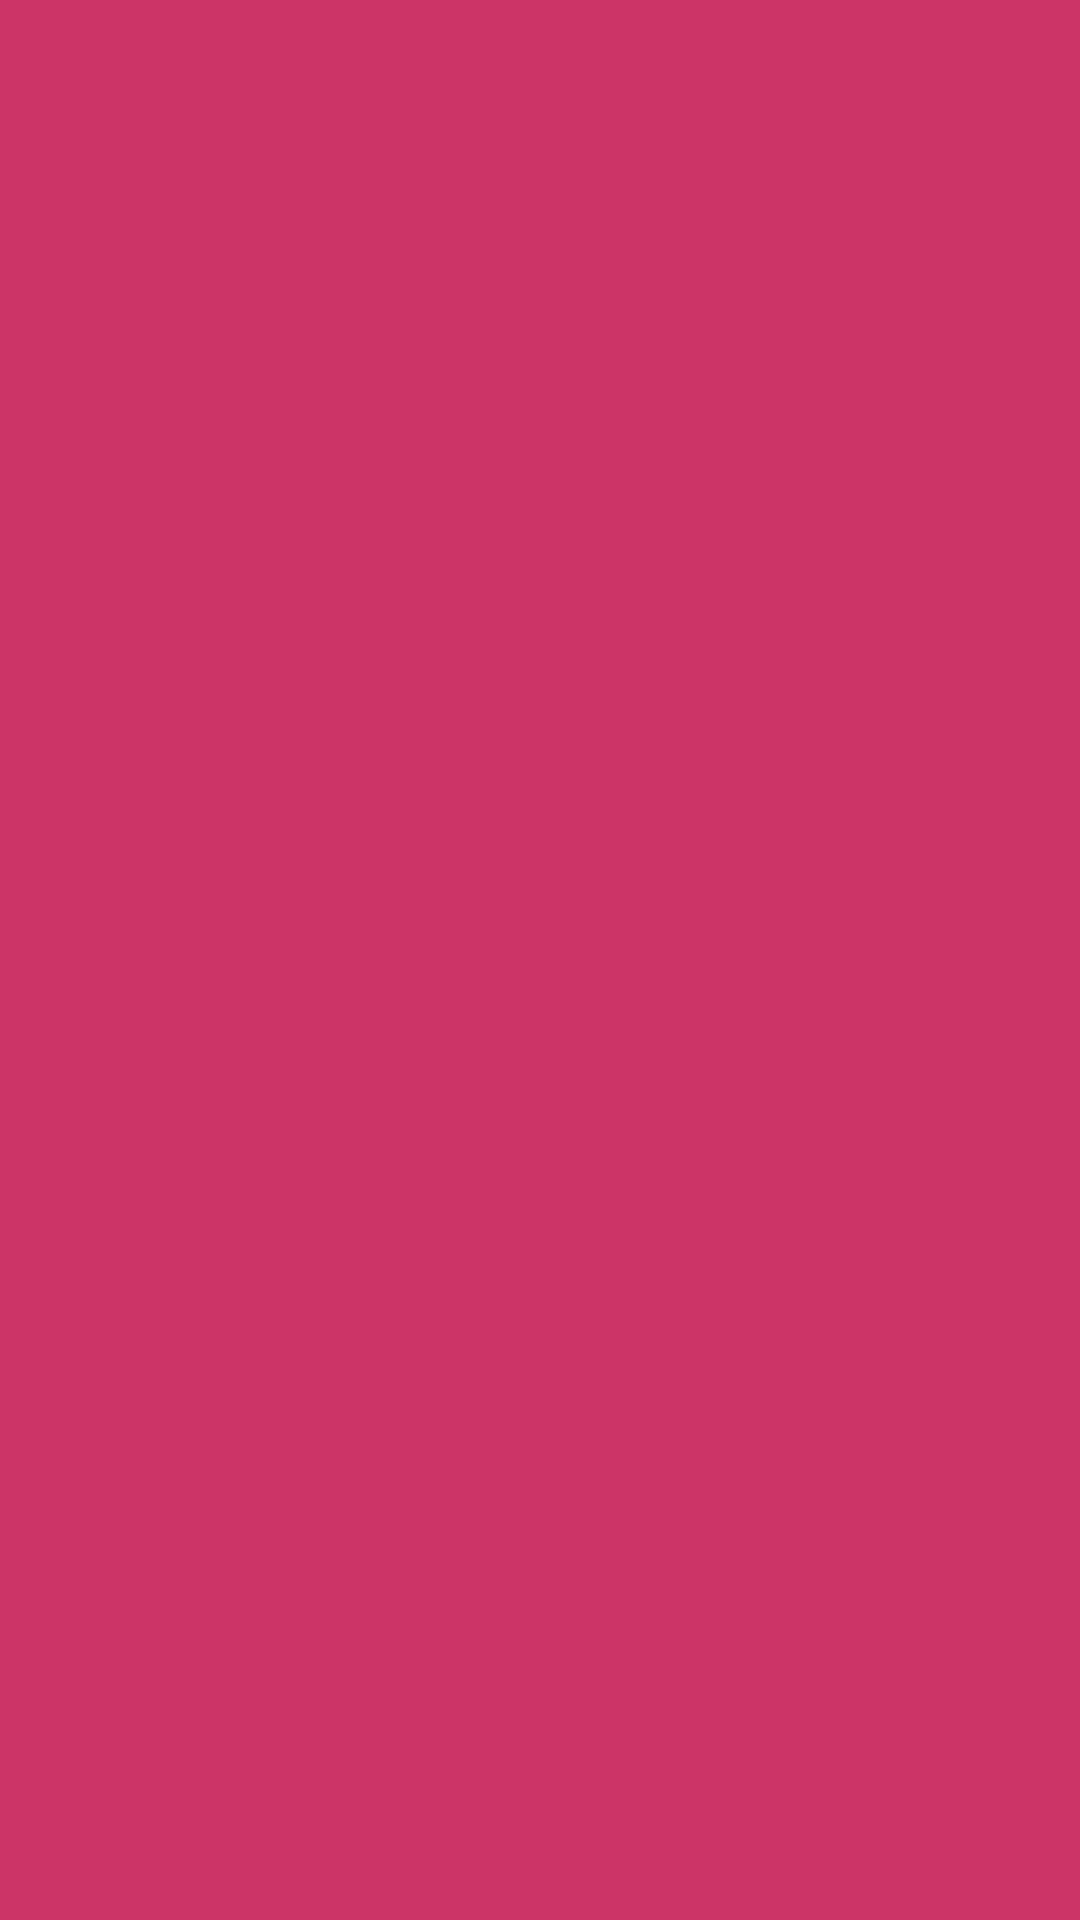 1080x1920 Steel Pink Solid Color Background